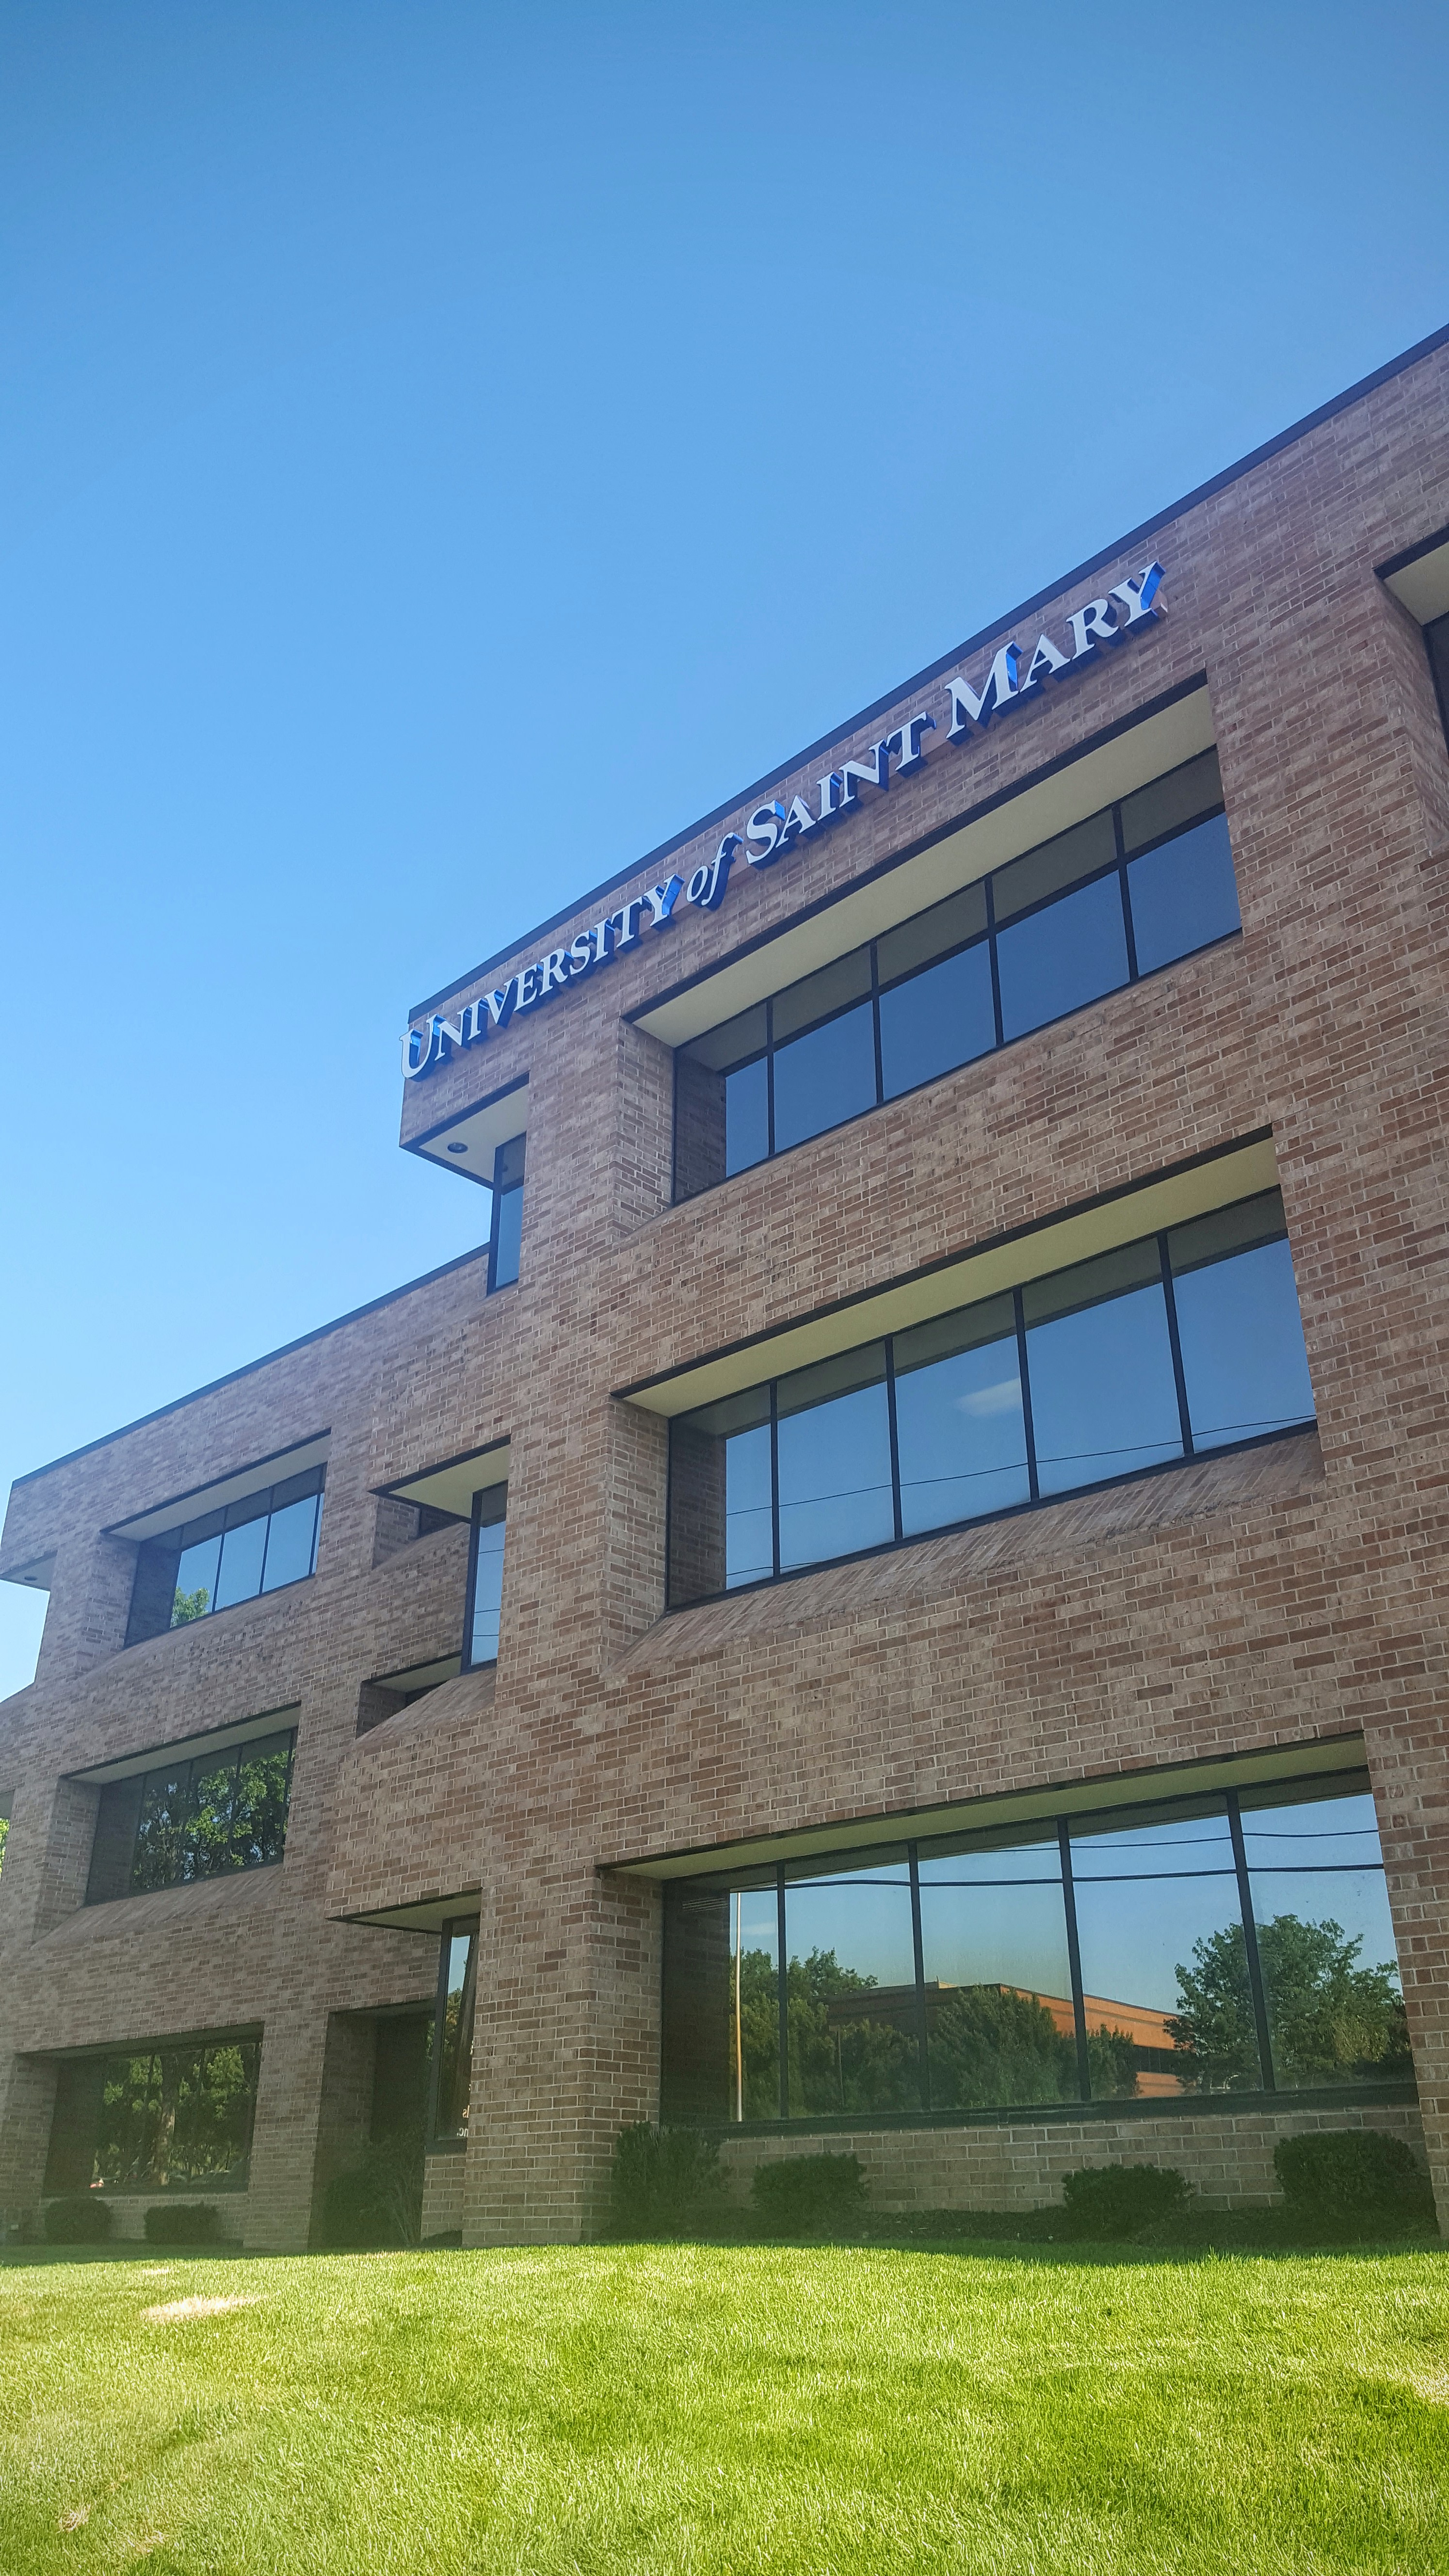 University of St Marys Overland Park campus signage -